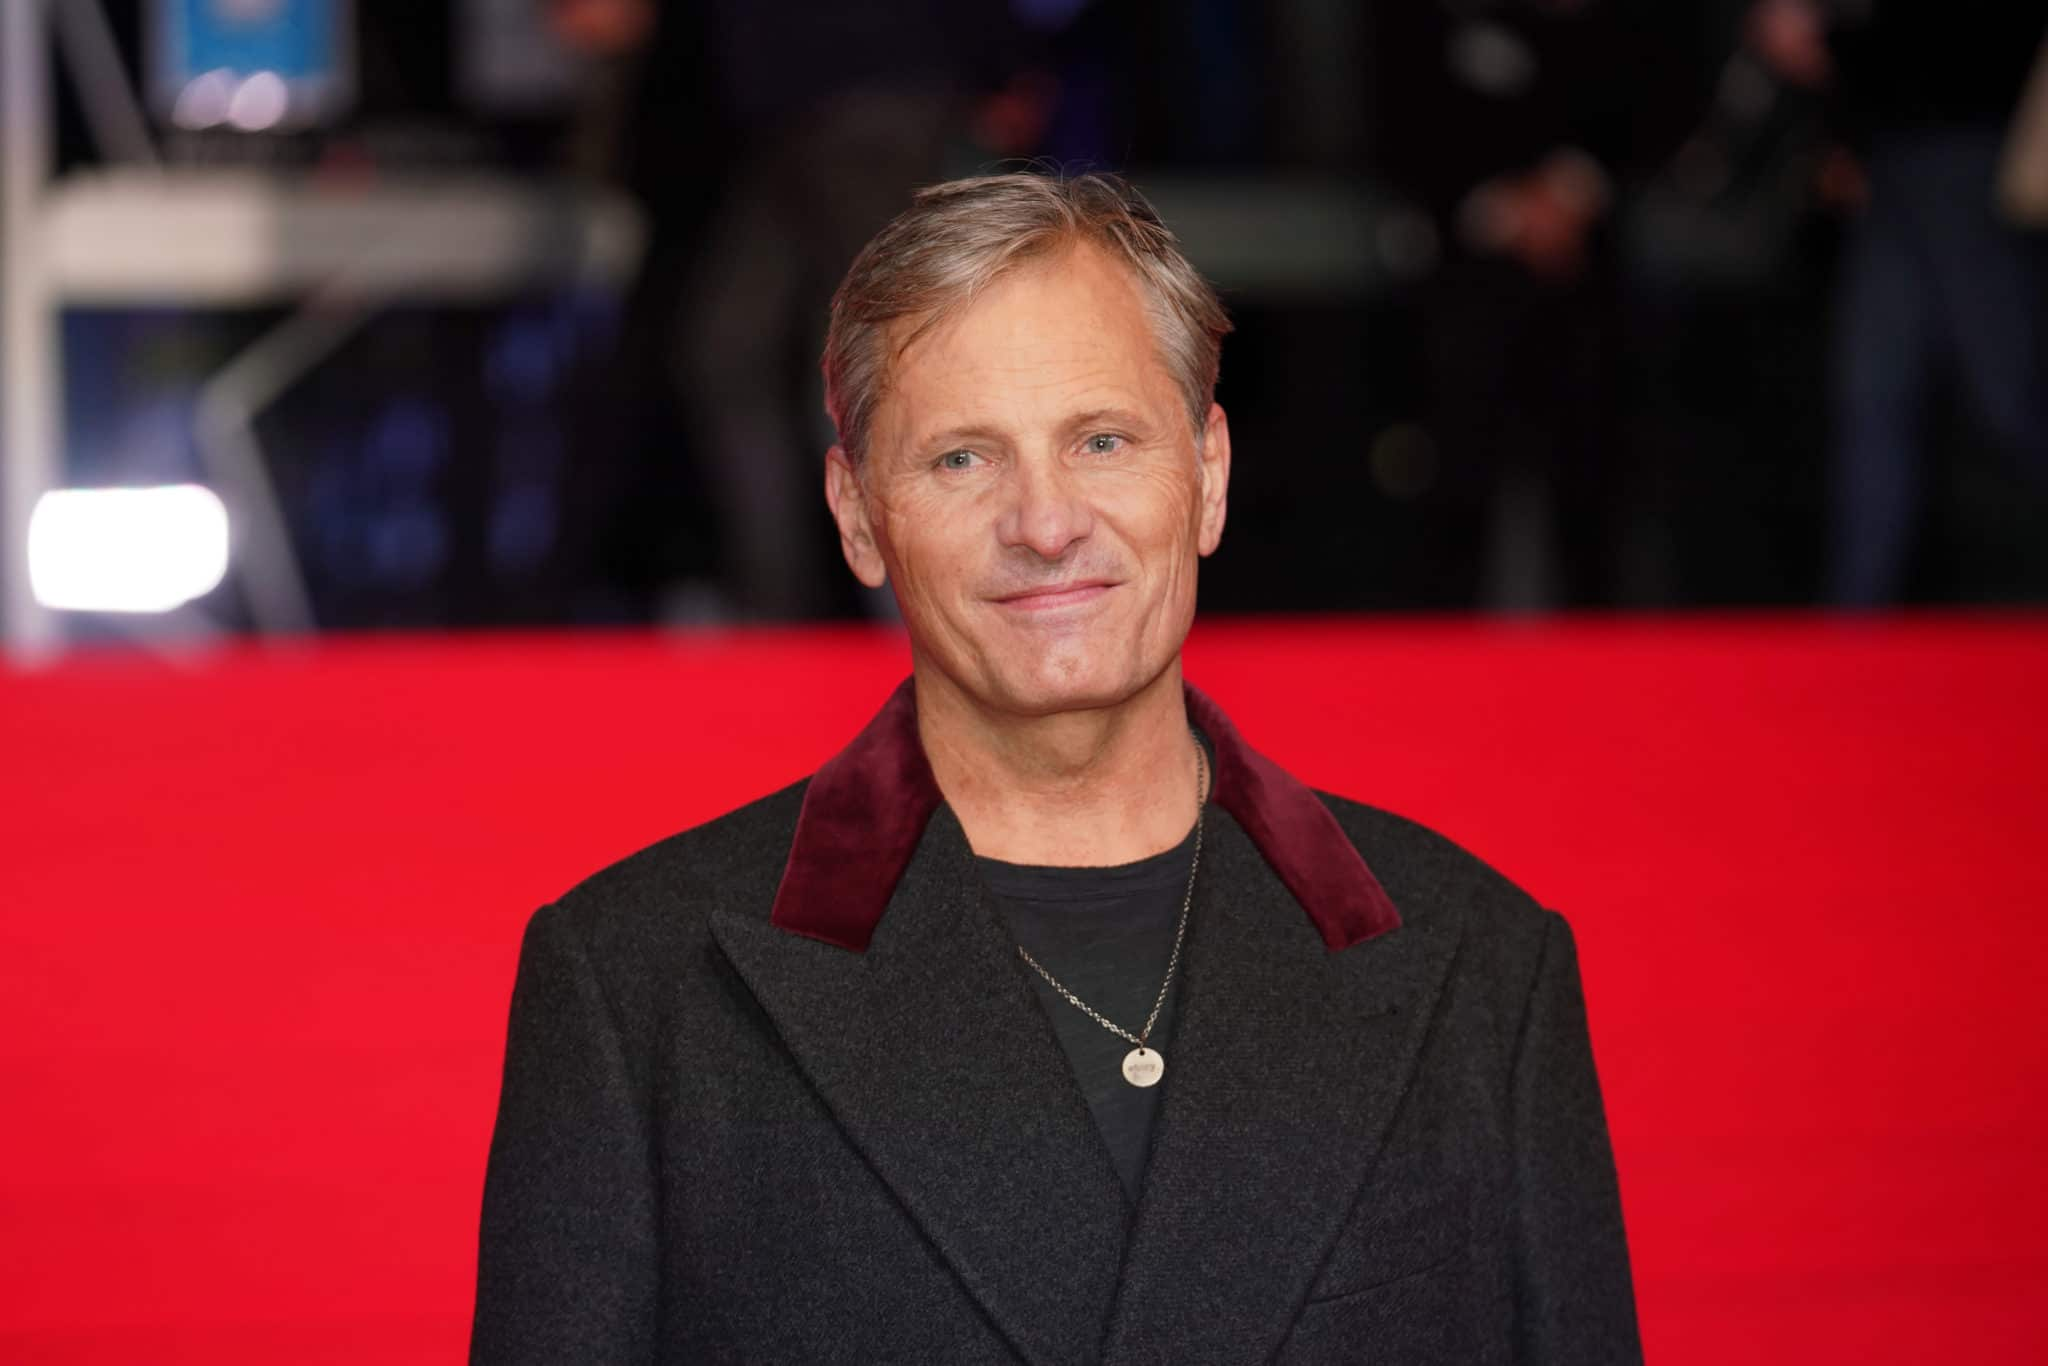 Lord of the Rings star Viggo Mortensen defends controversial gay film by suggesting he might not be 'completely straight'